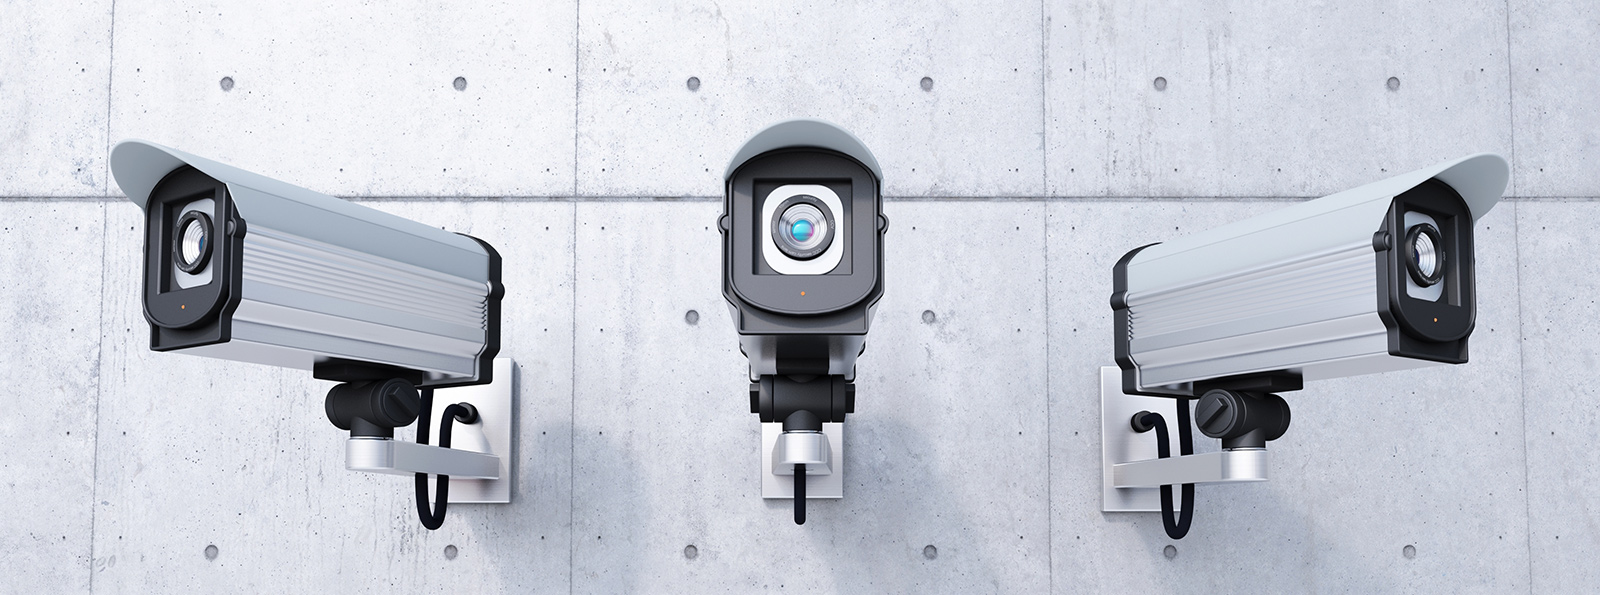 Tallahassee security camera systems